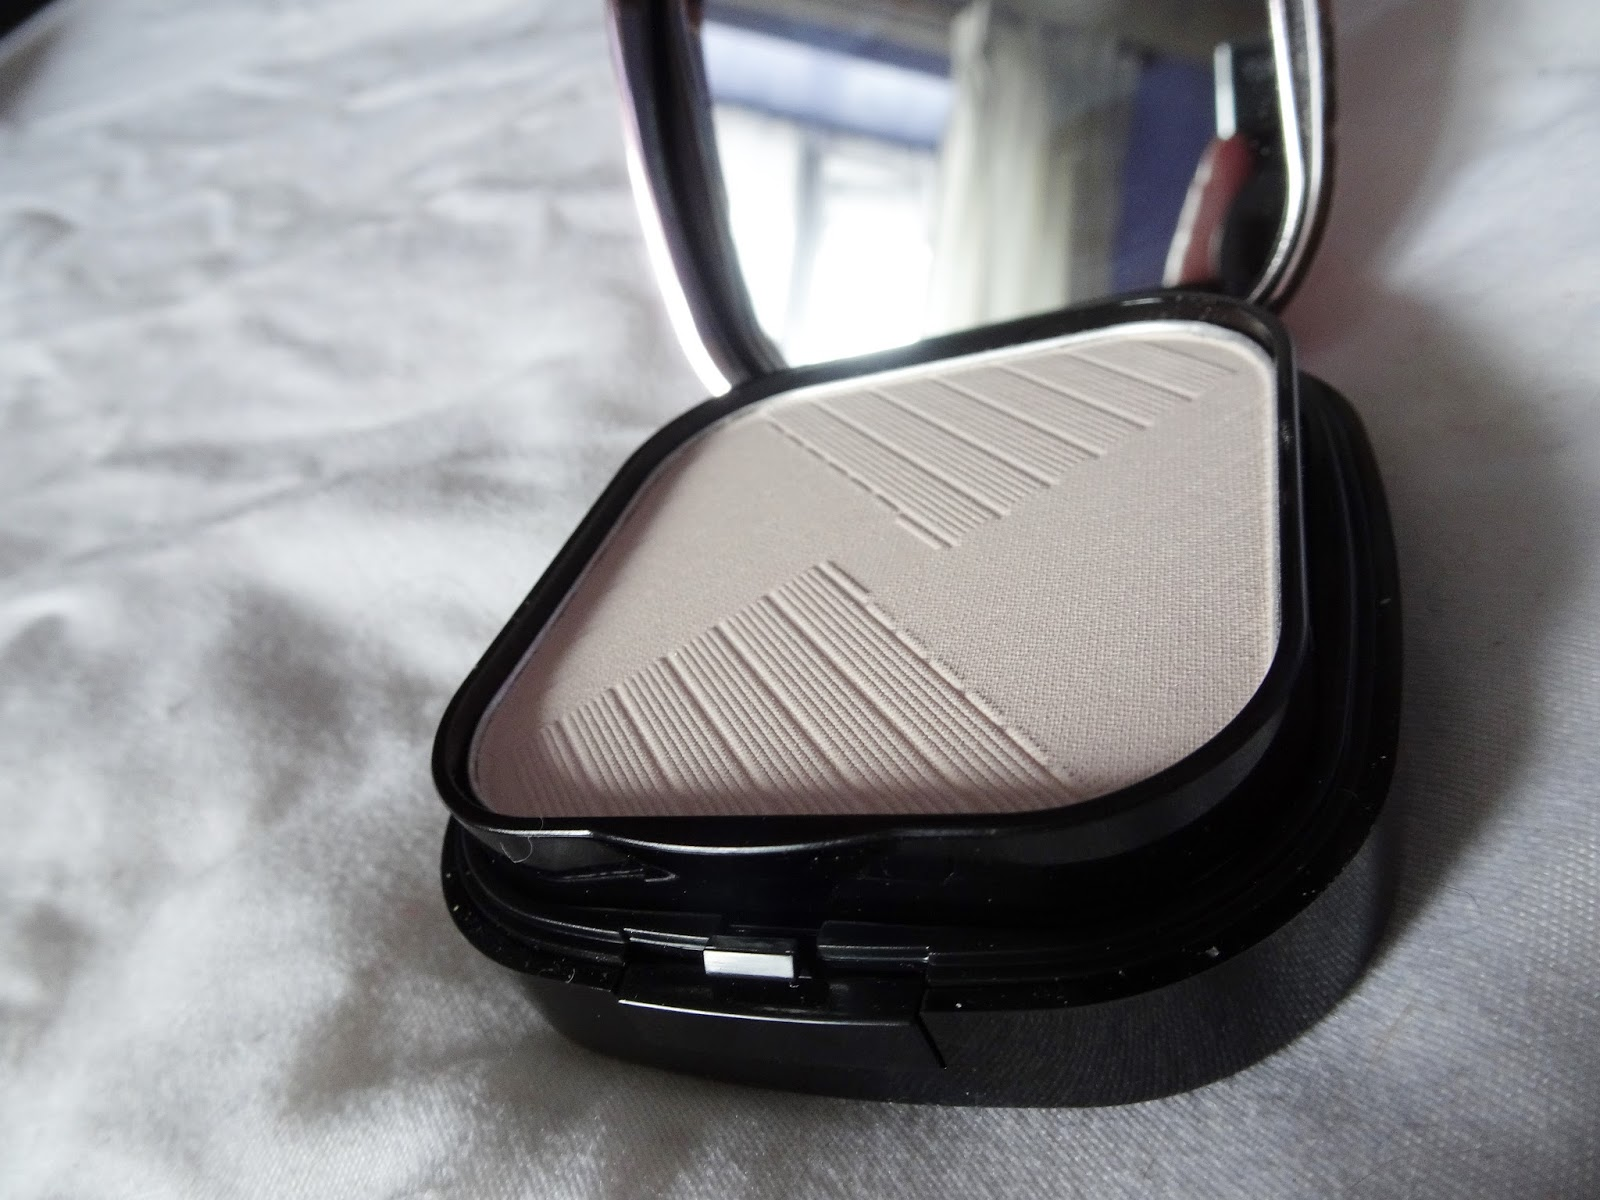 MUA Strobe and Glow review